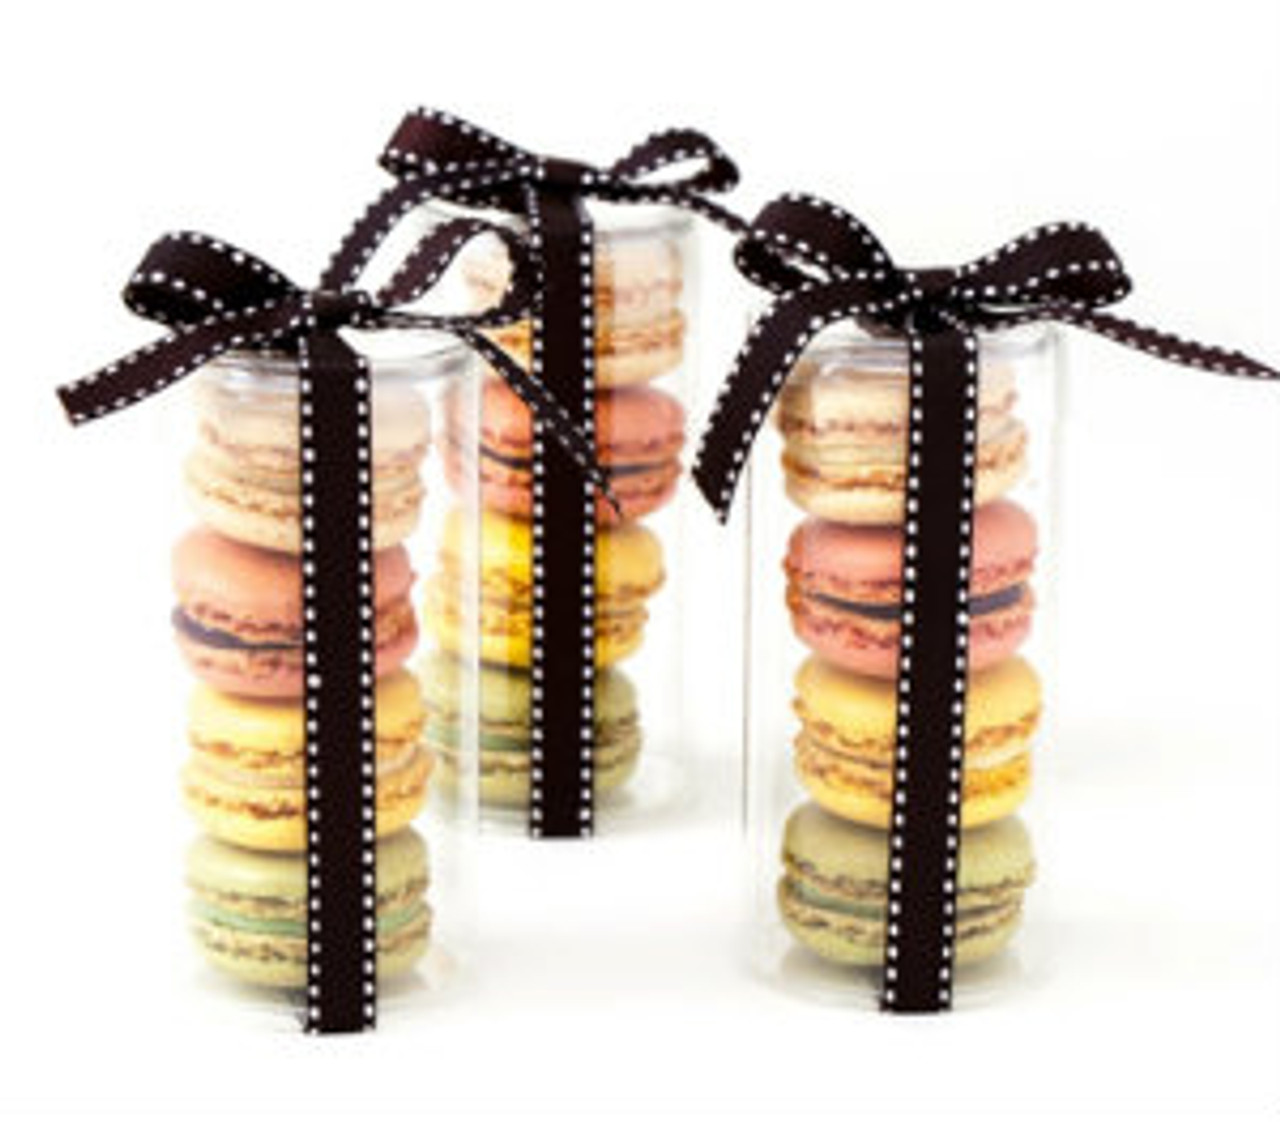 Tube - 4 Macarons - Not available for shipping.